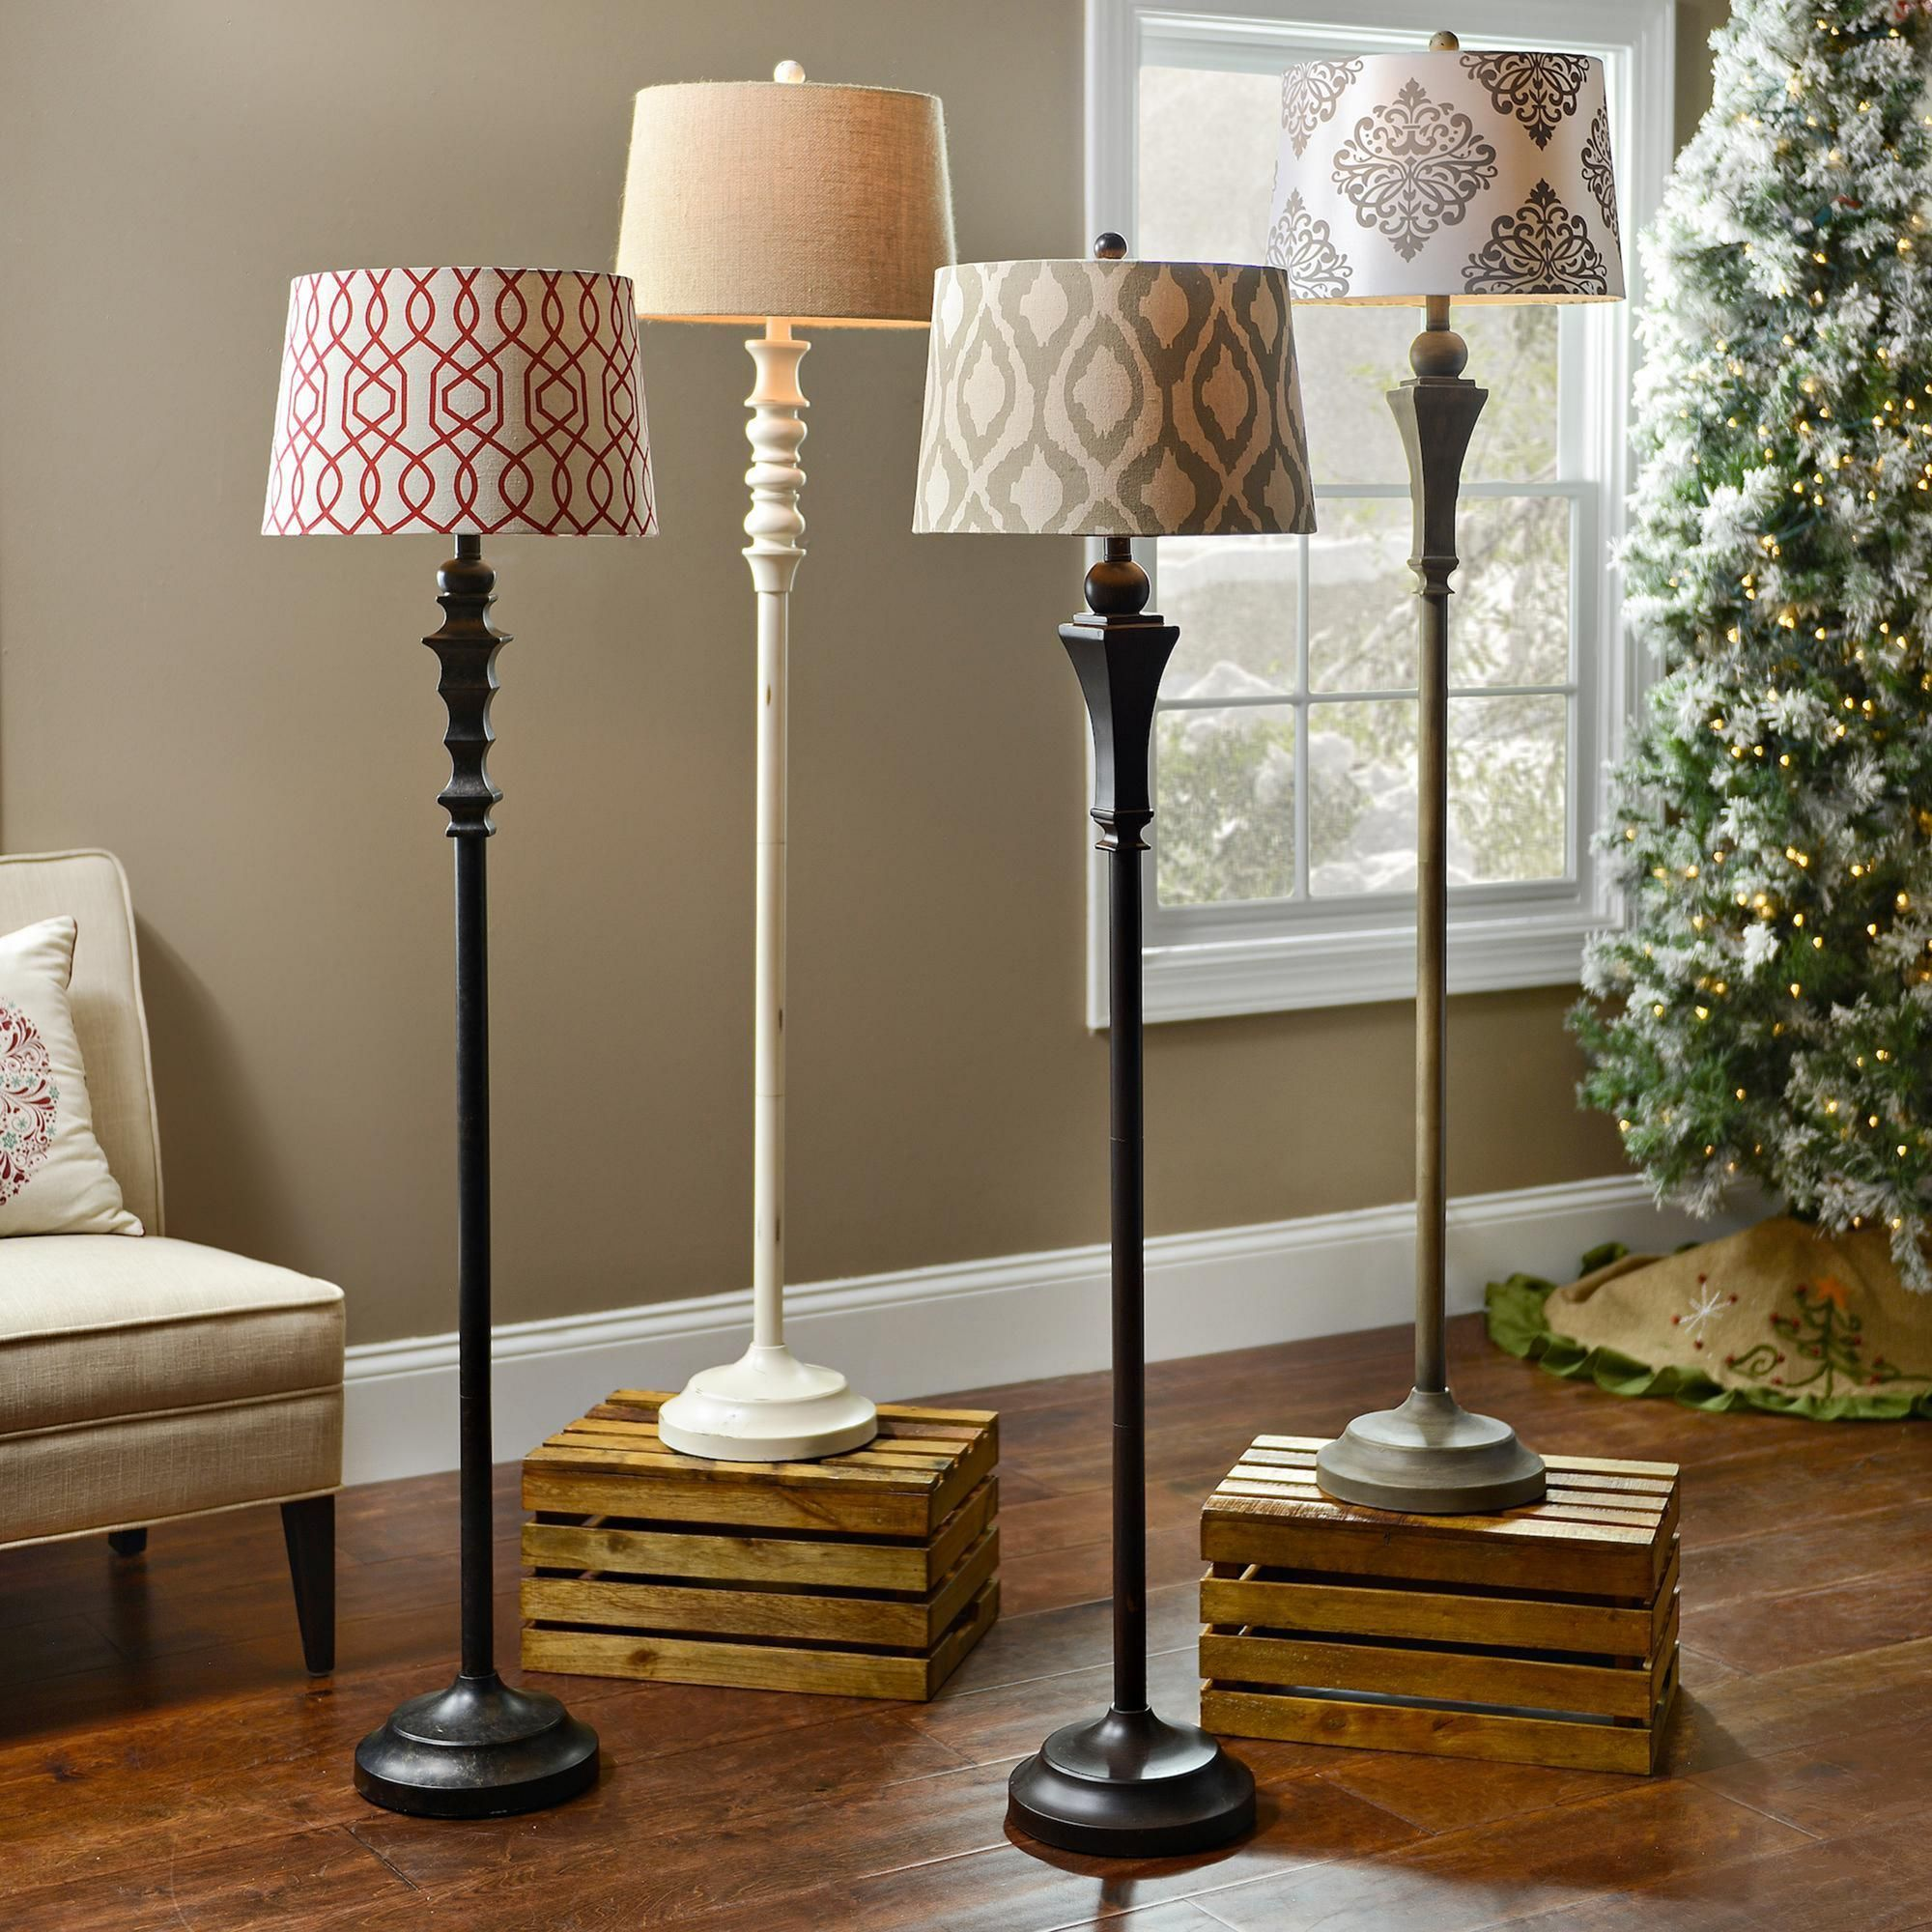 20 Amazing Ideas To Make Your Simple Houses Fell More Comfortable And Look Luxurious Stylish Floor Lamp Floor Lamps Living Room Farmhouse Floor Lamps